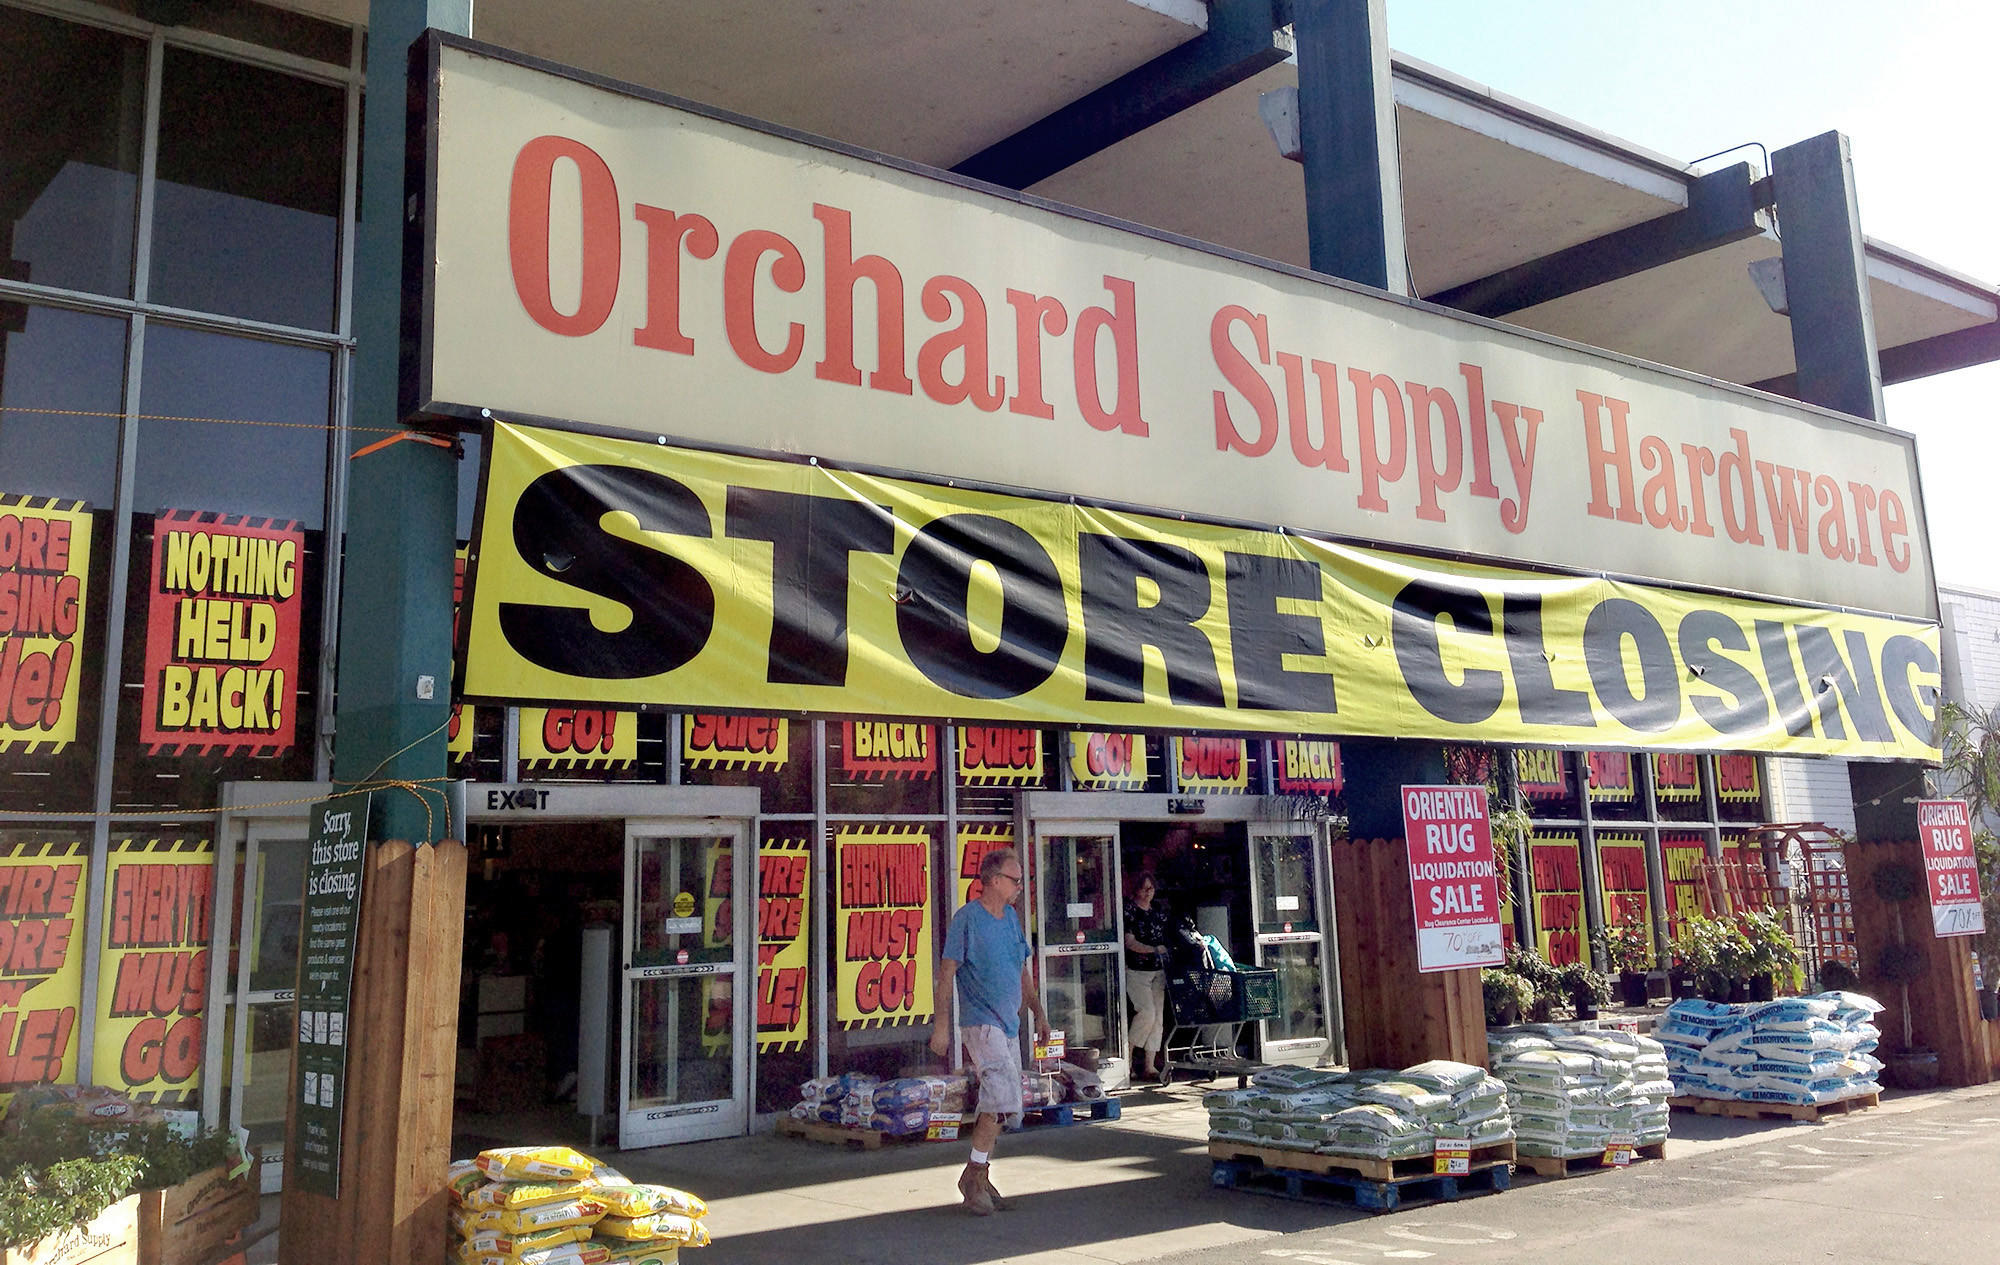 The Hobby Lobby, a retail store, will move in to the former Orchard Supply Hardware store on Victory Boulevard this summer